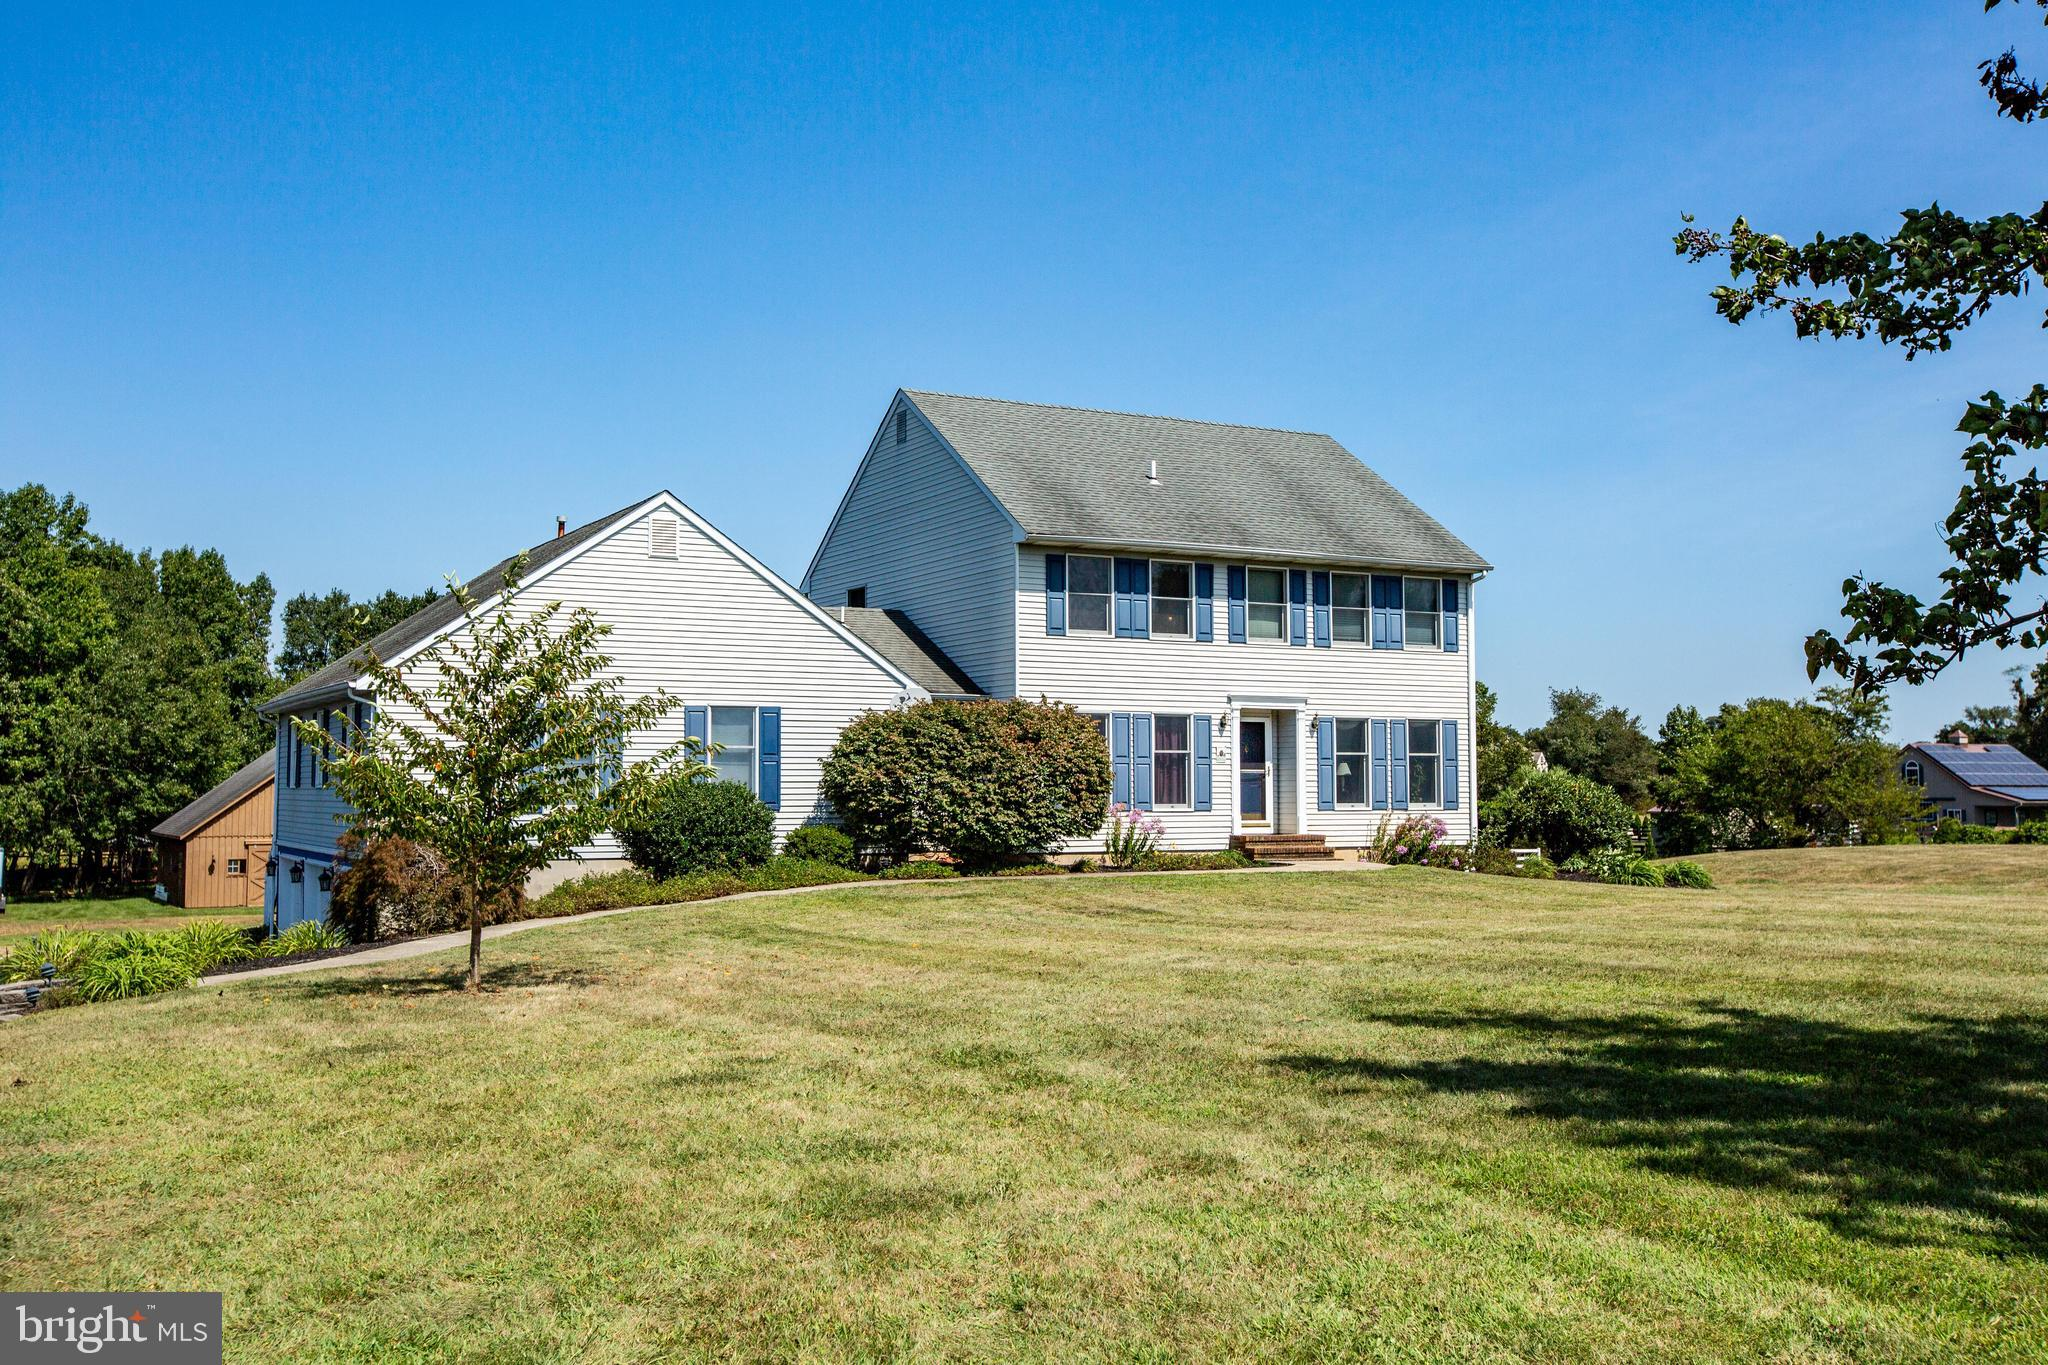 513 CHESTERFIELD ARNEYTOWN ROAD, CHESTERFIELD, NJ 08515